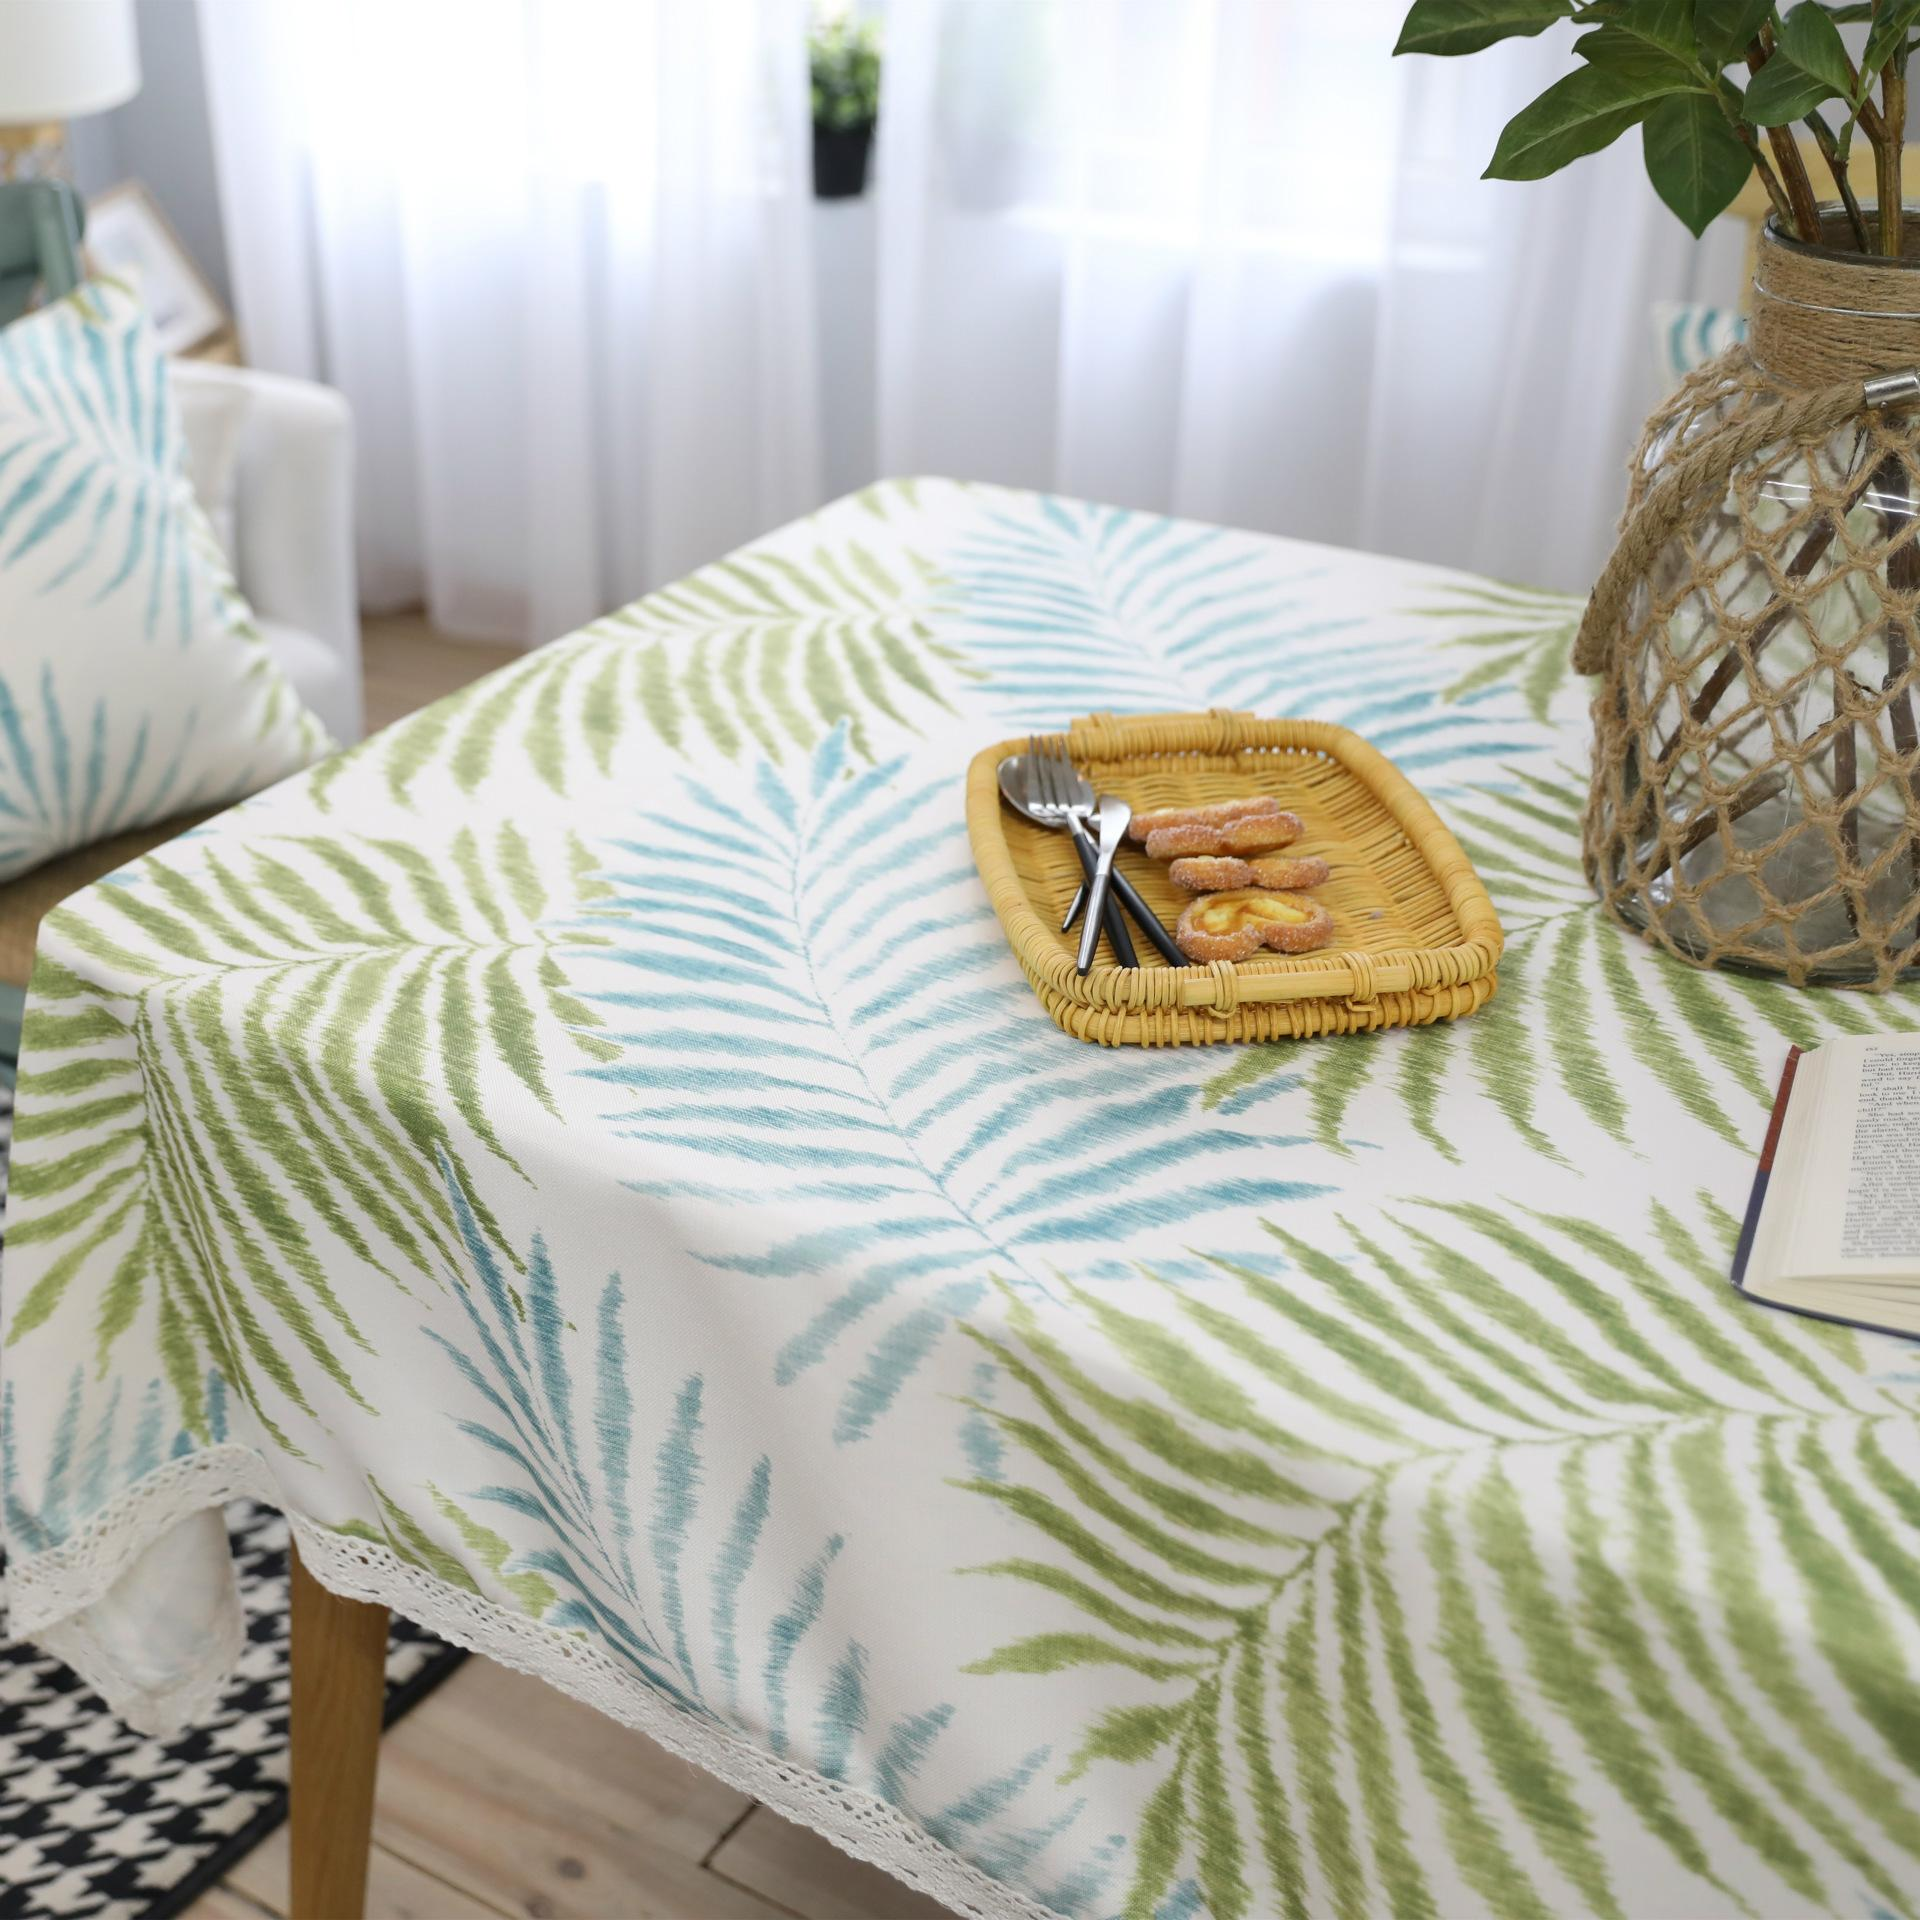 Pastoral Leaf Pattern Decorative Table Cloth Cotton Linen Lace Tablecloth  Dining Table Cover Kitchen Home Decor Restaurant Table Linens Card Table ...